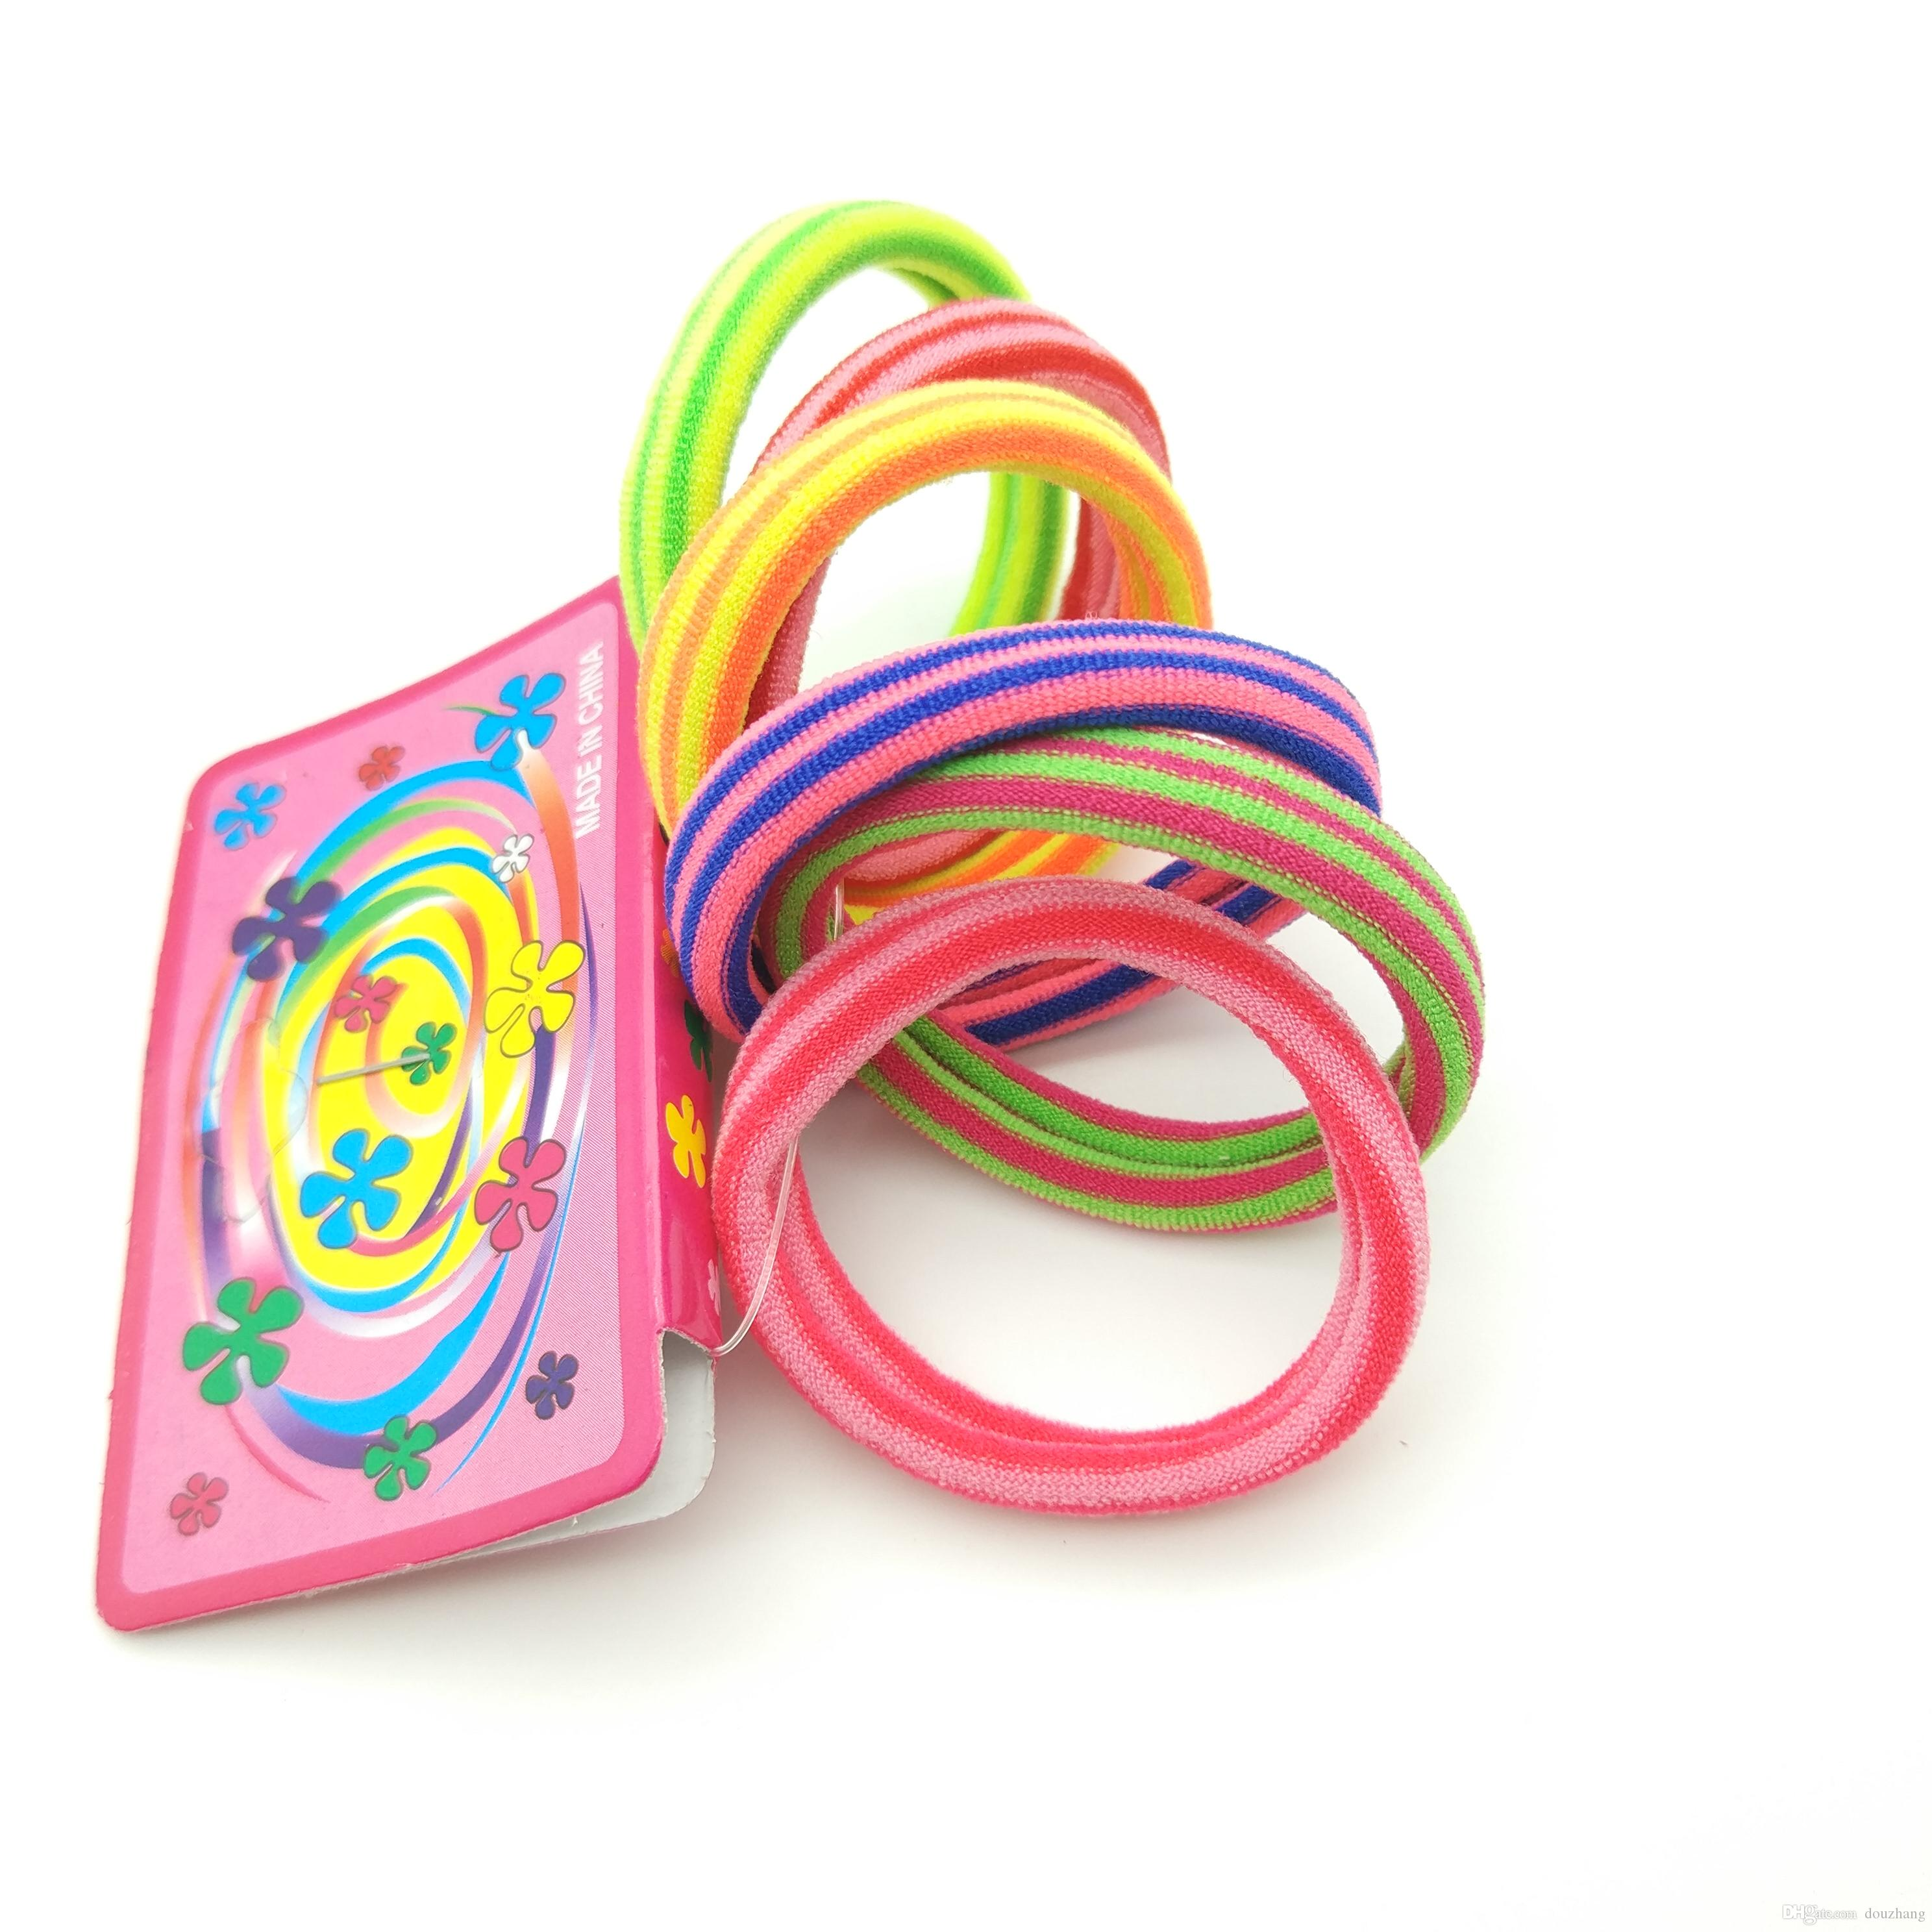 /pack Size 4cm Striped Colored Elastics Rubber Bands Hair Accessories Colorful Headband Girls Tie